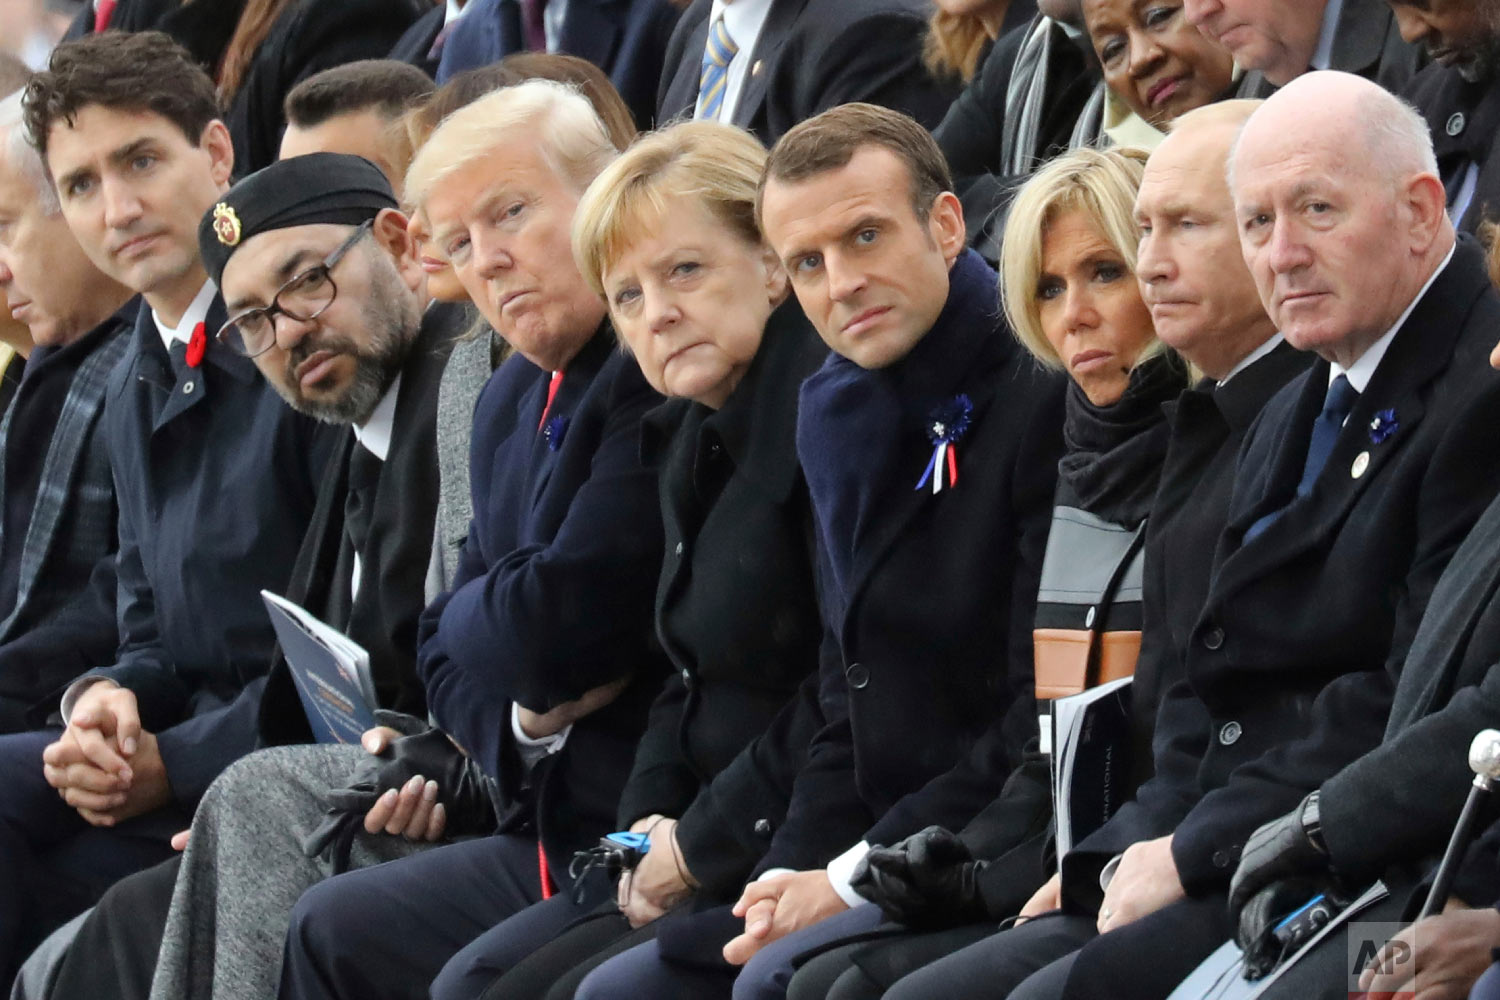 Canadian Prime Minister Justin Trudeau, from left, Morocco's Prince Moulay Hassan, Moroccan King Mohammed VI, US First Lady Melania Trump, US President Donald Trump, German Chancellor Angela Merkel, French President Emmanuel Macron and his wife Brigitte Macron, Russian President Vladimir Putin and Australian Governor-General Peter Cosgrove attend a ceremony the Arc de Triomphe in Paris, France, as part of the commemorations marking the 100th anniversary of the 11 November 1918 armistice, ending World War I, Nov. 11, 2018. (Ludovic Marin/Pool Photo via AP)